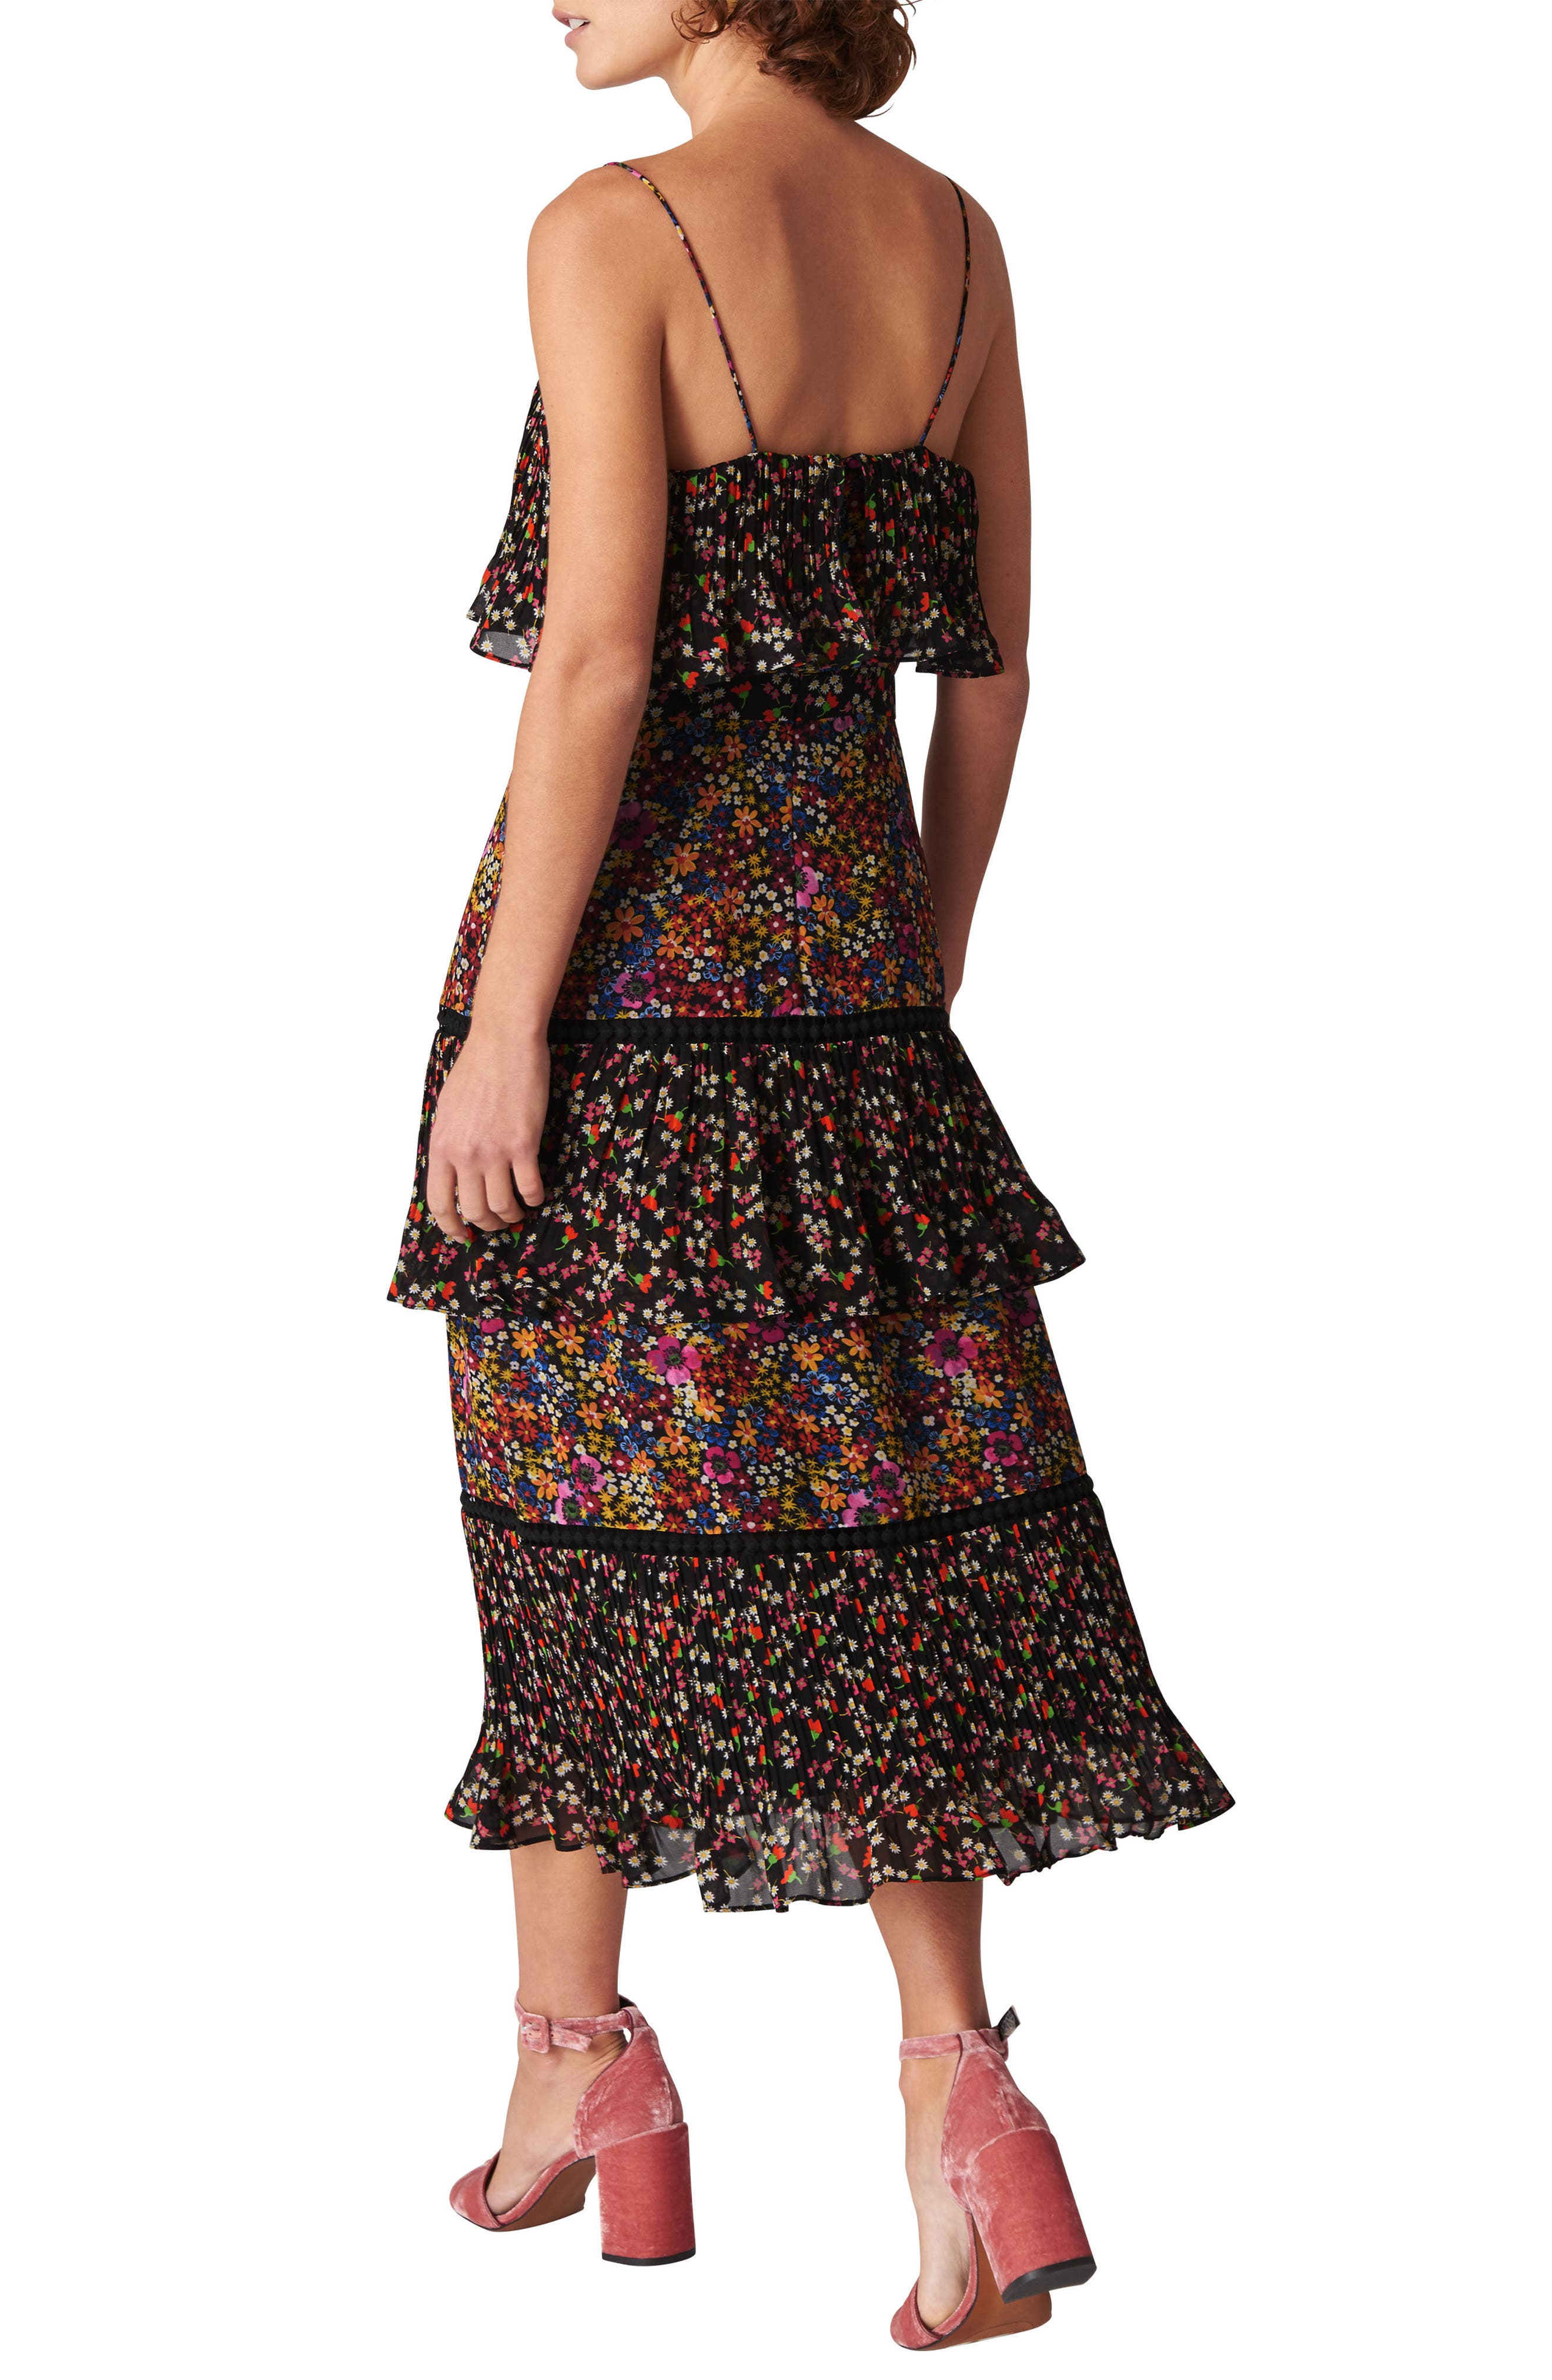 Skylar Peony Print Tiered Dress,                             Alternate thumbnail 2, color,                             Black/ Multi